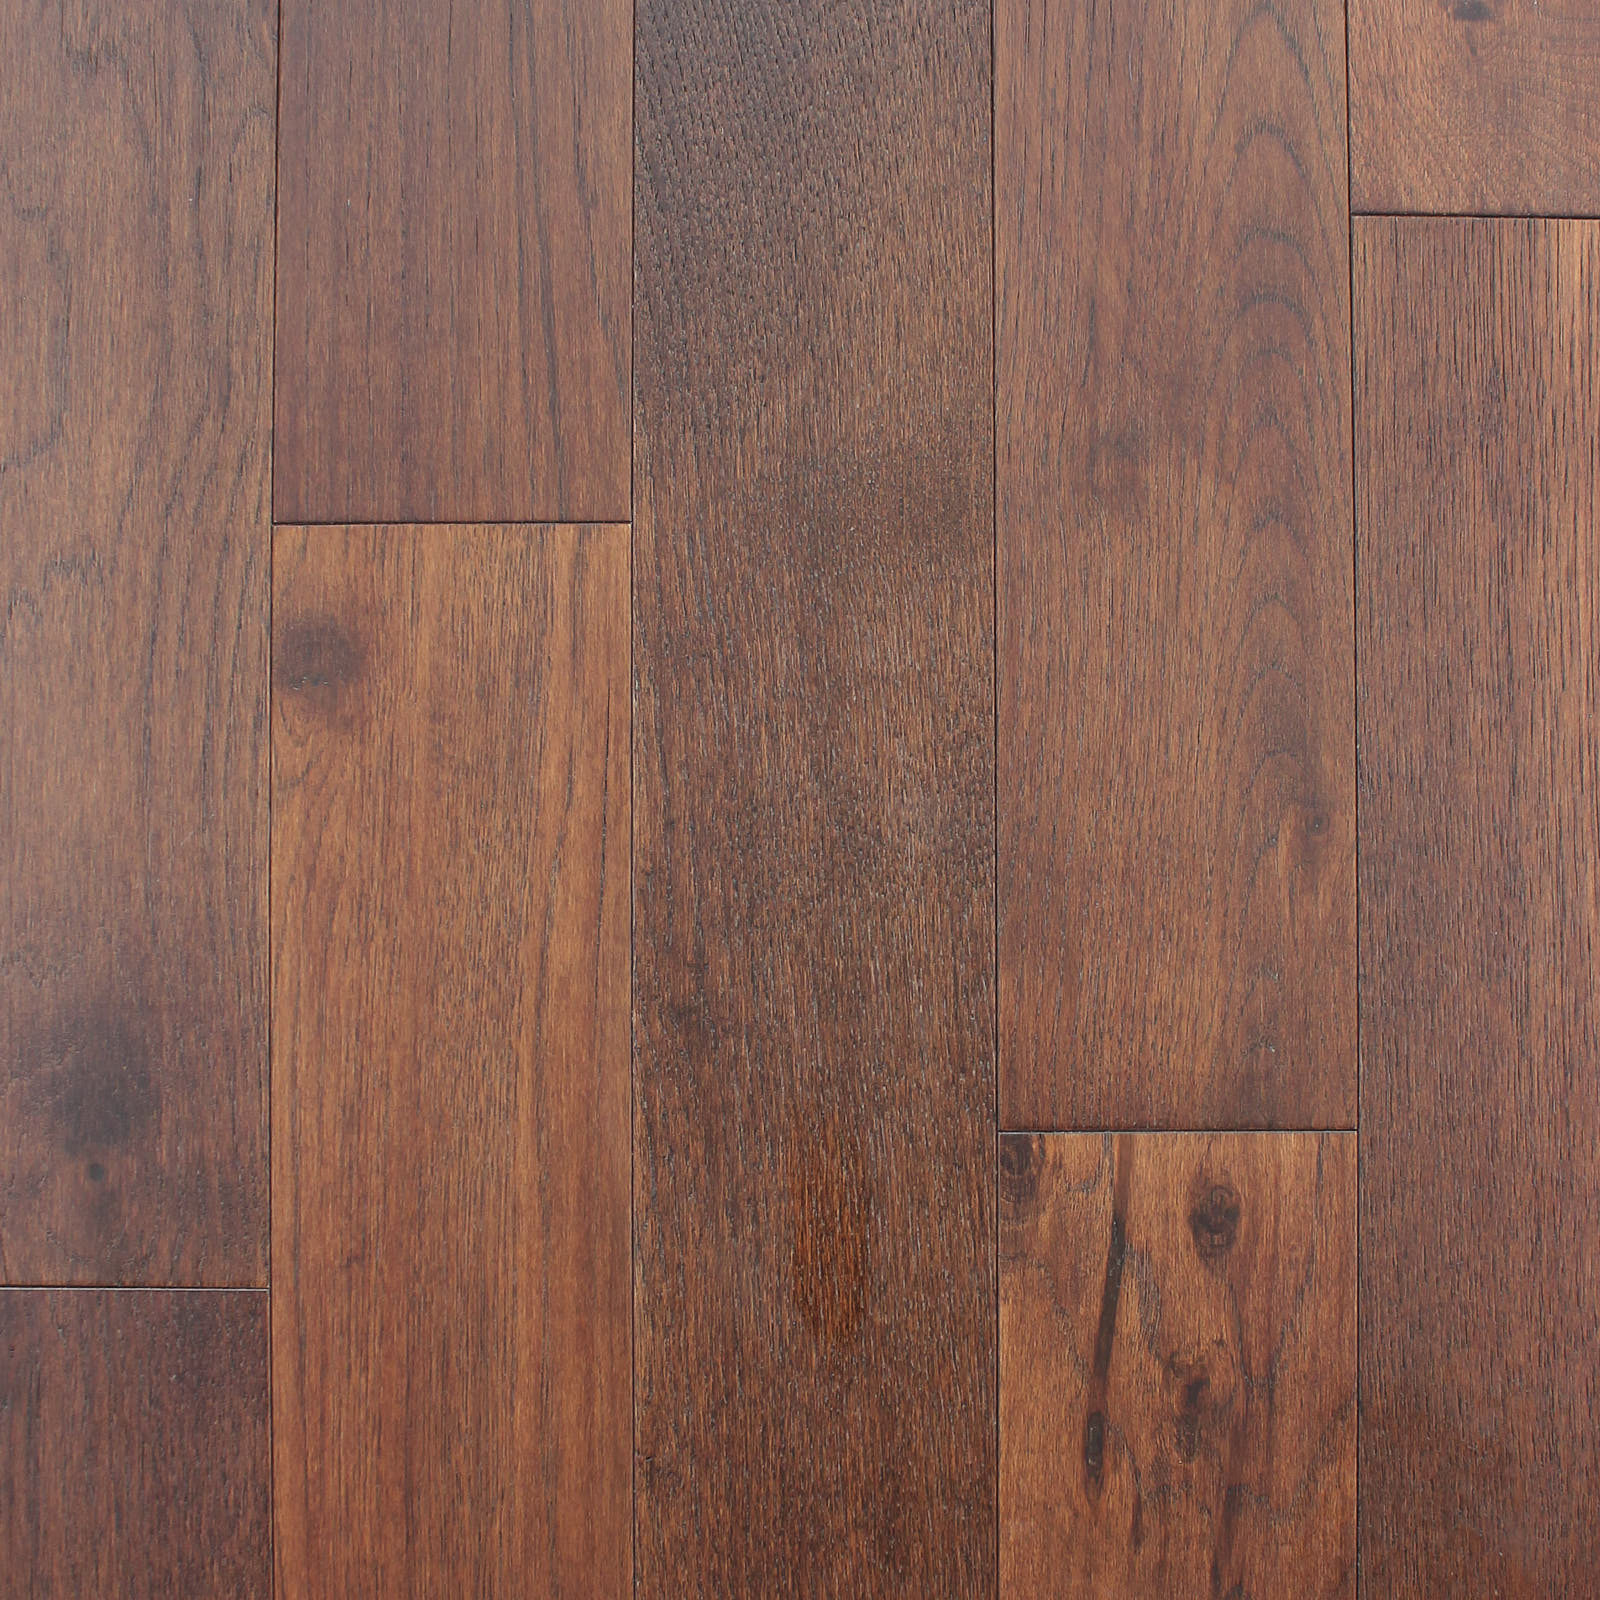 Dorado Myrtle Engineered Hardwood Flooring